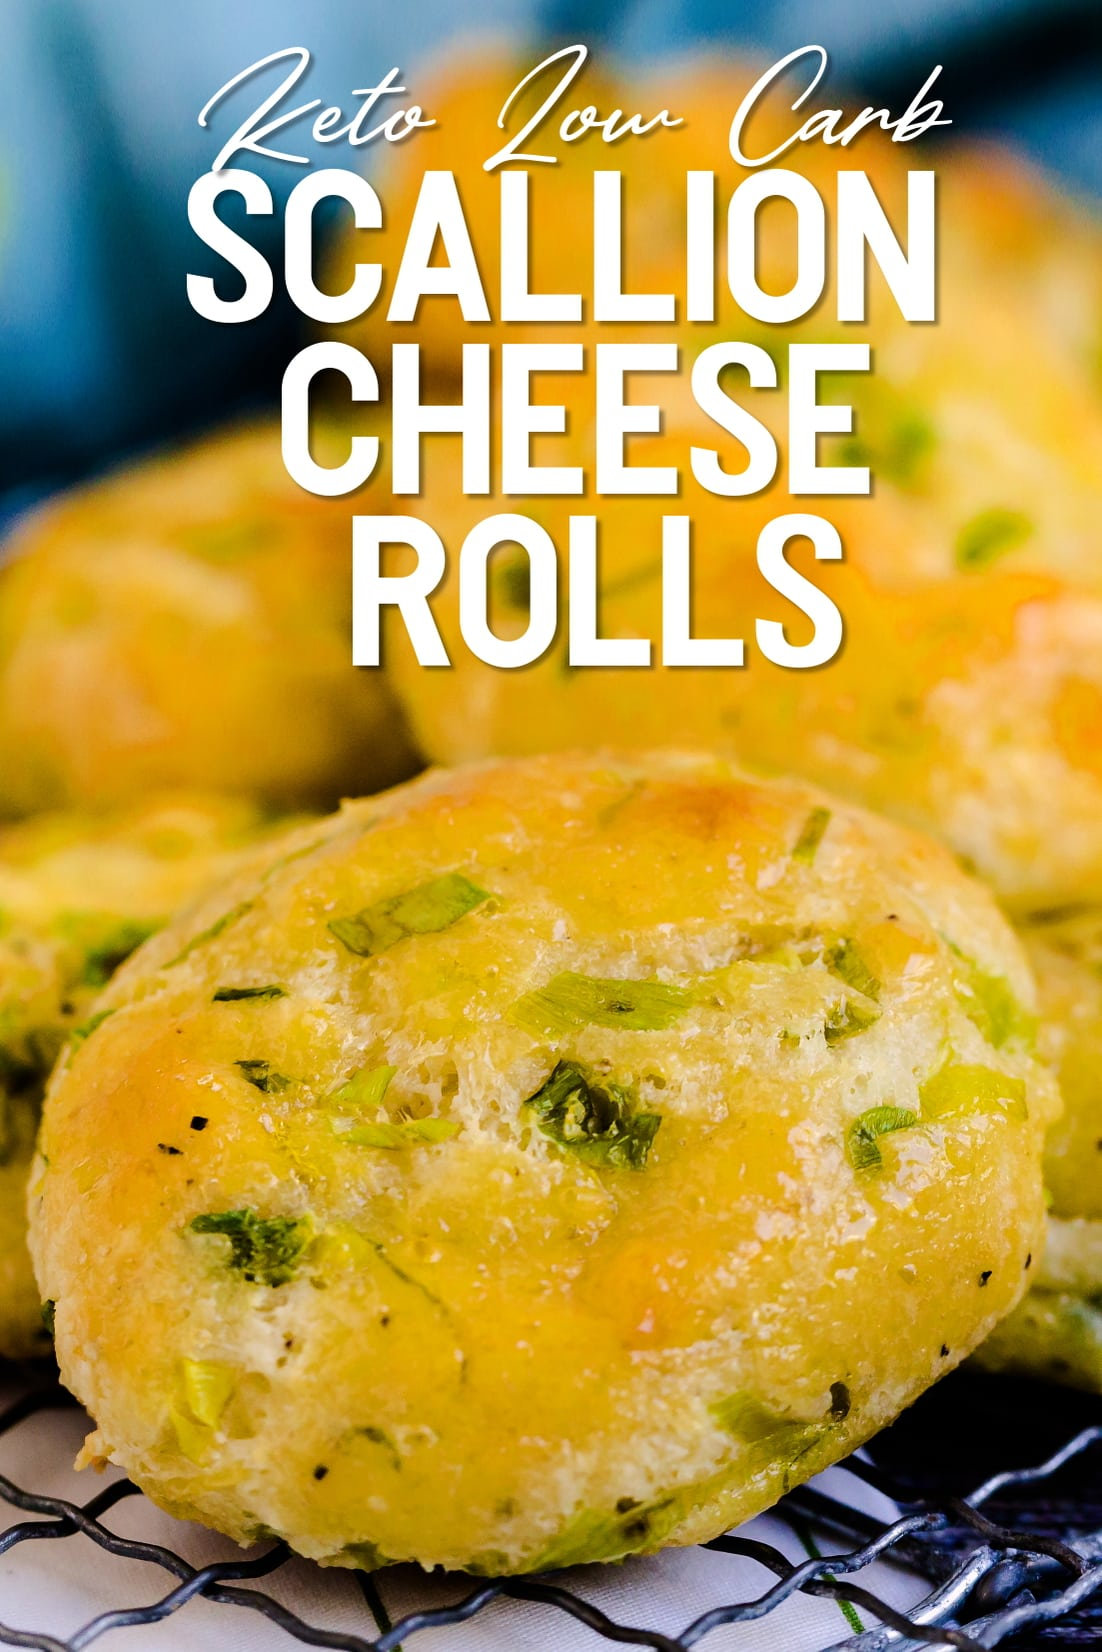 Keto scallion green onion cheese rolls stacked on a cooling rack